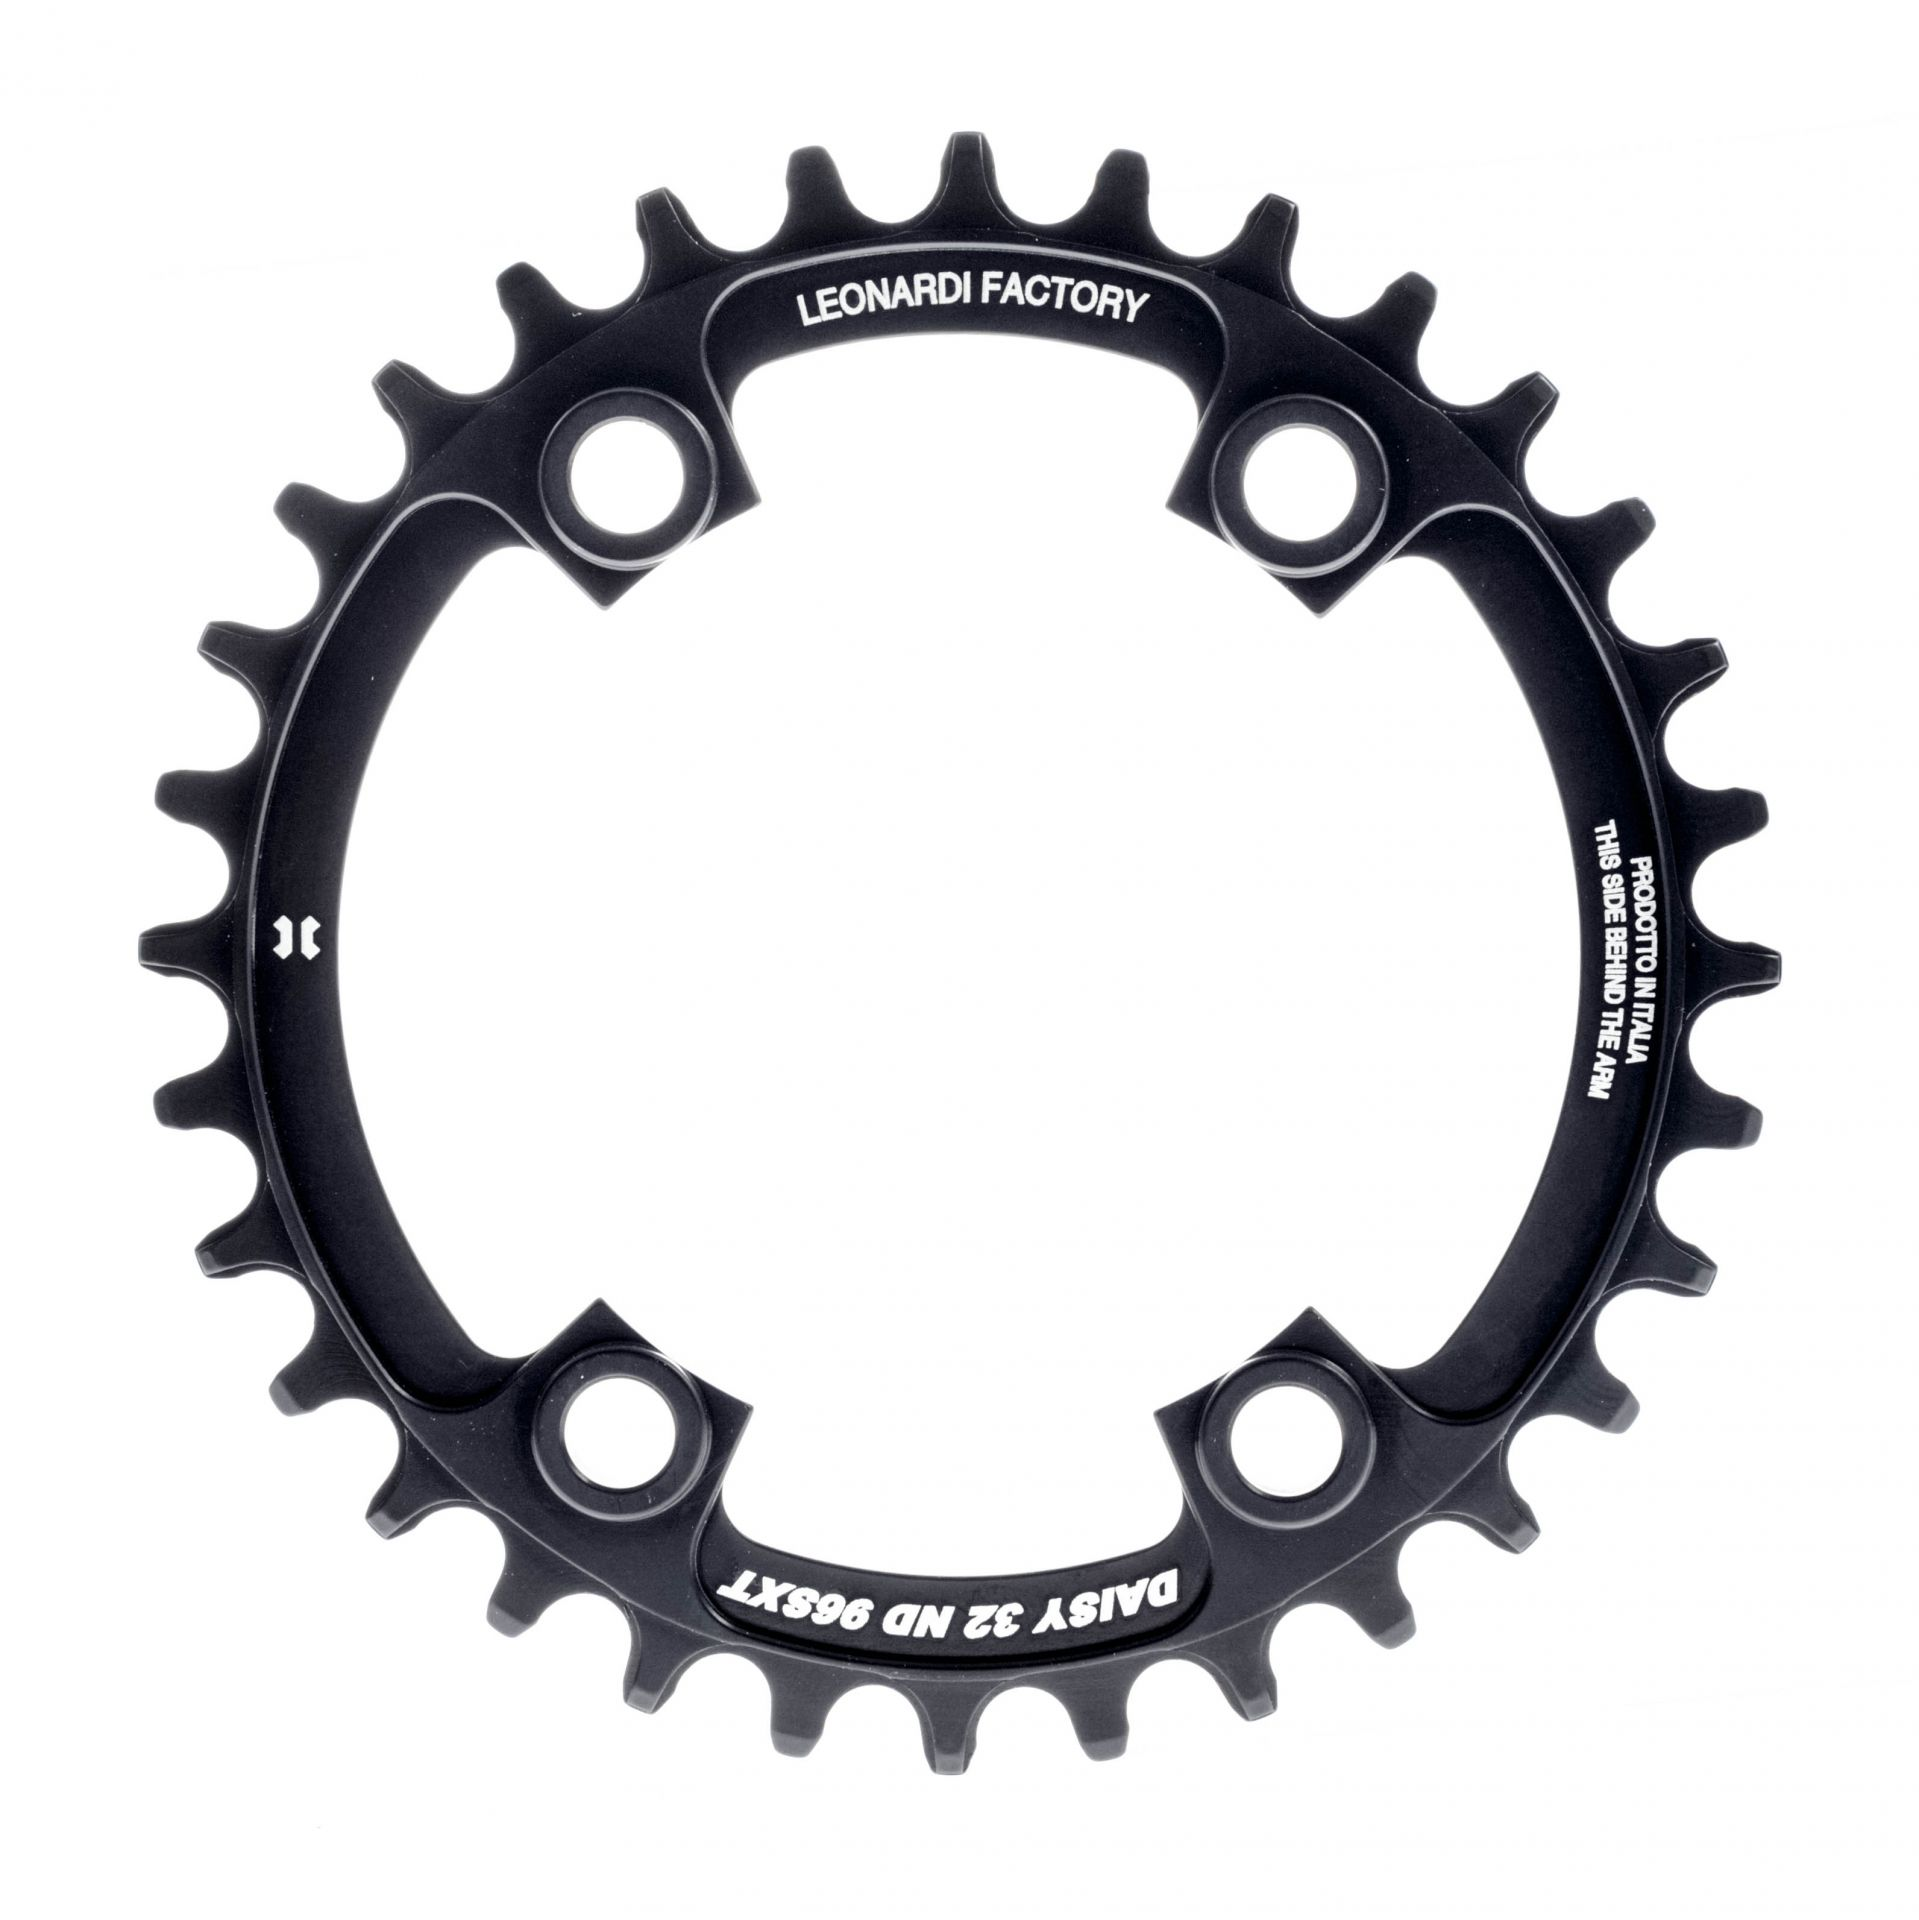 Plateau narrow/wide Leonardi Factory Daisy comp. Shimano 96 mm 10/11V 30 dents Noir